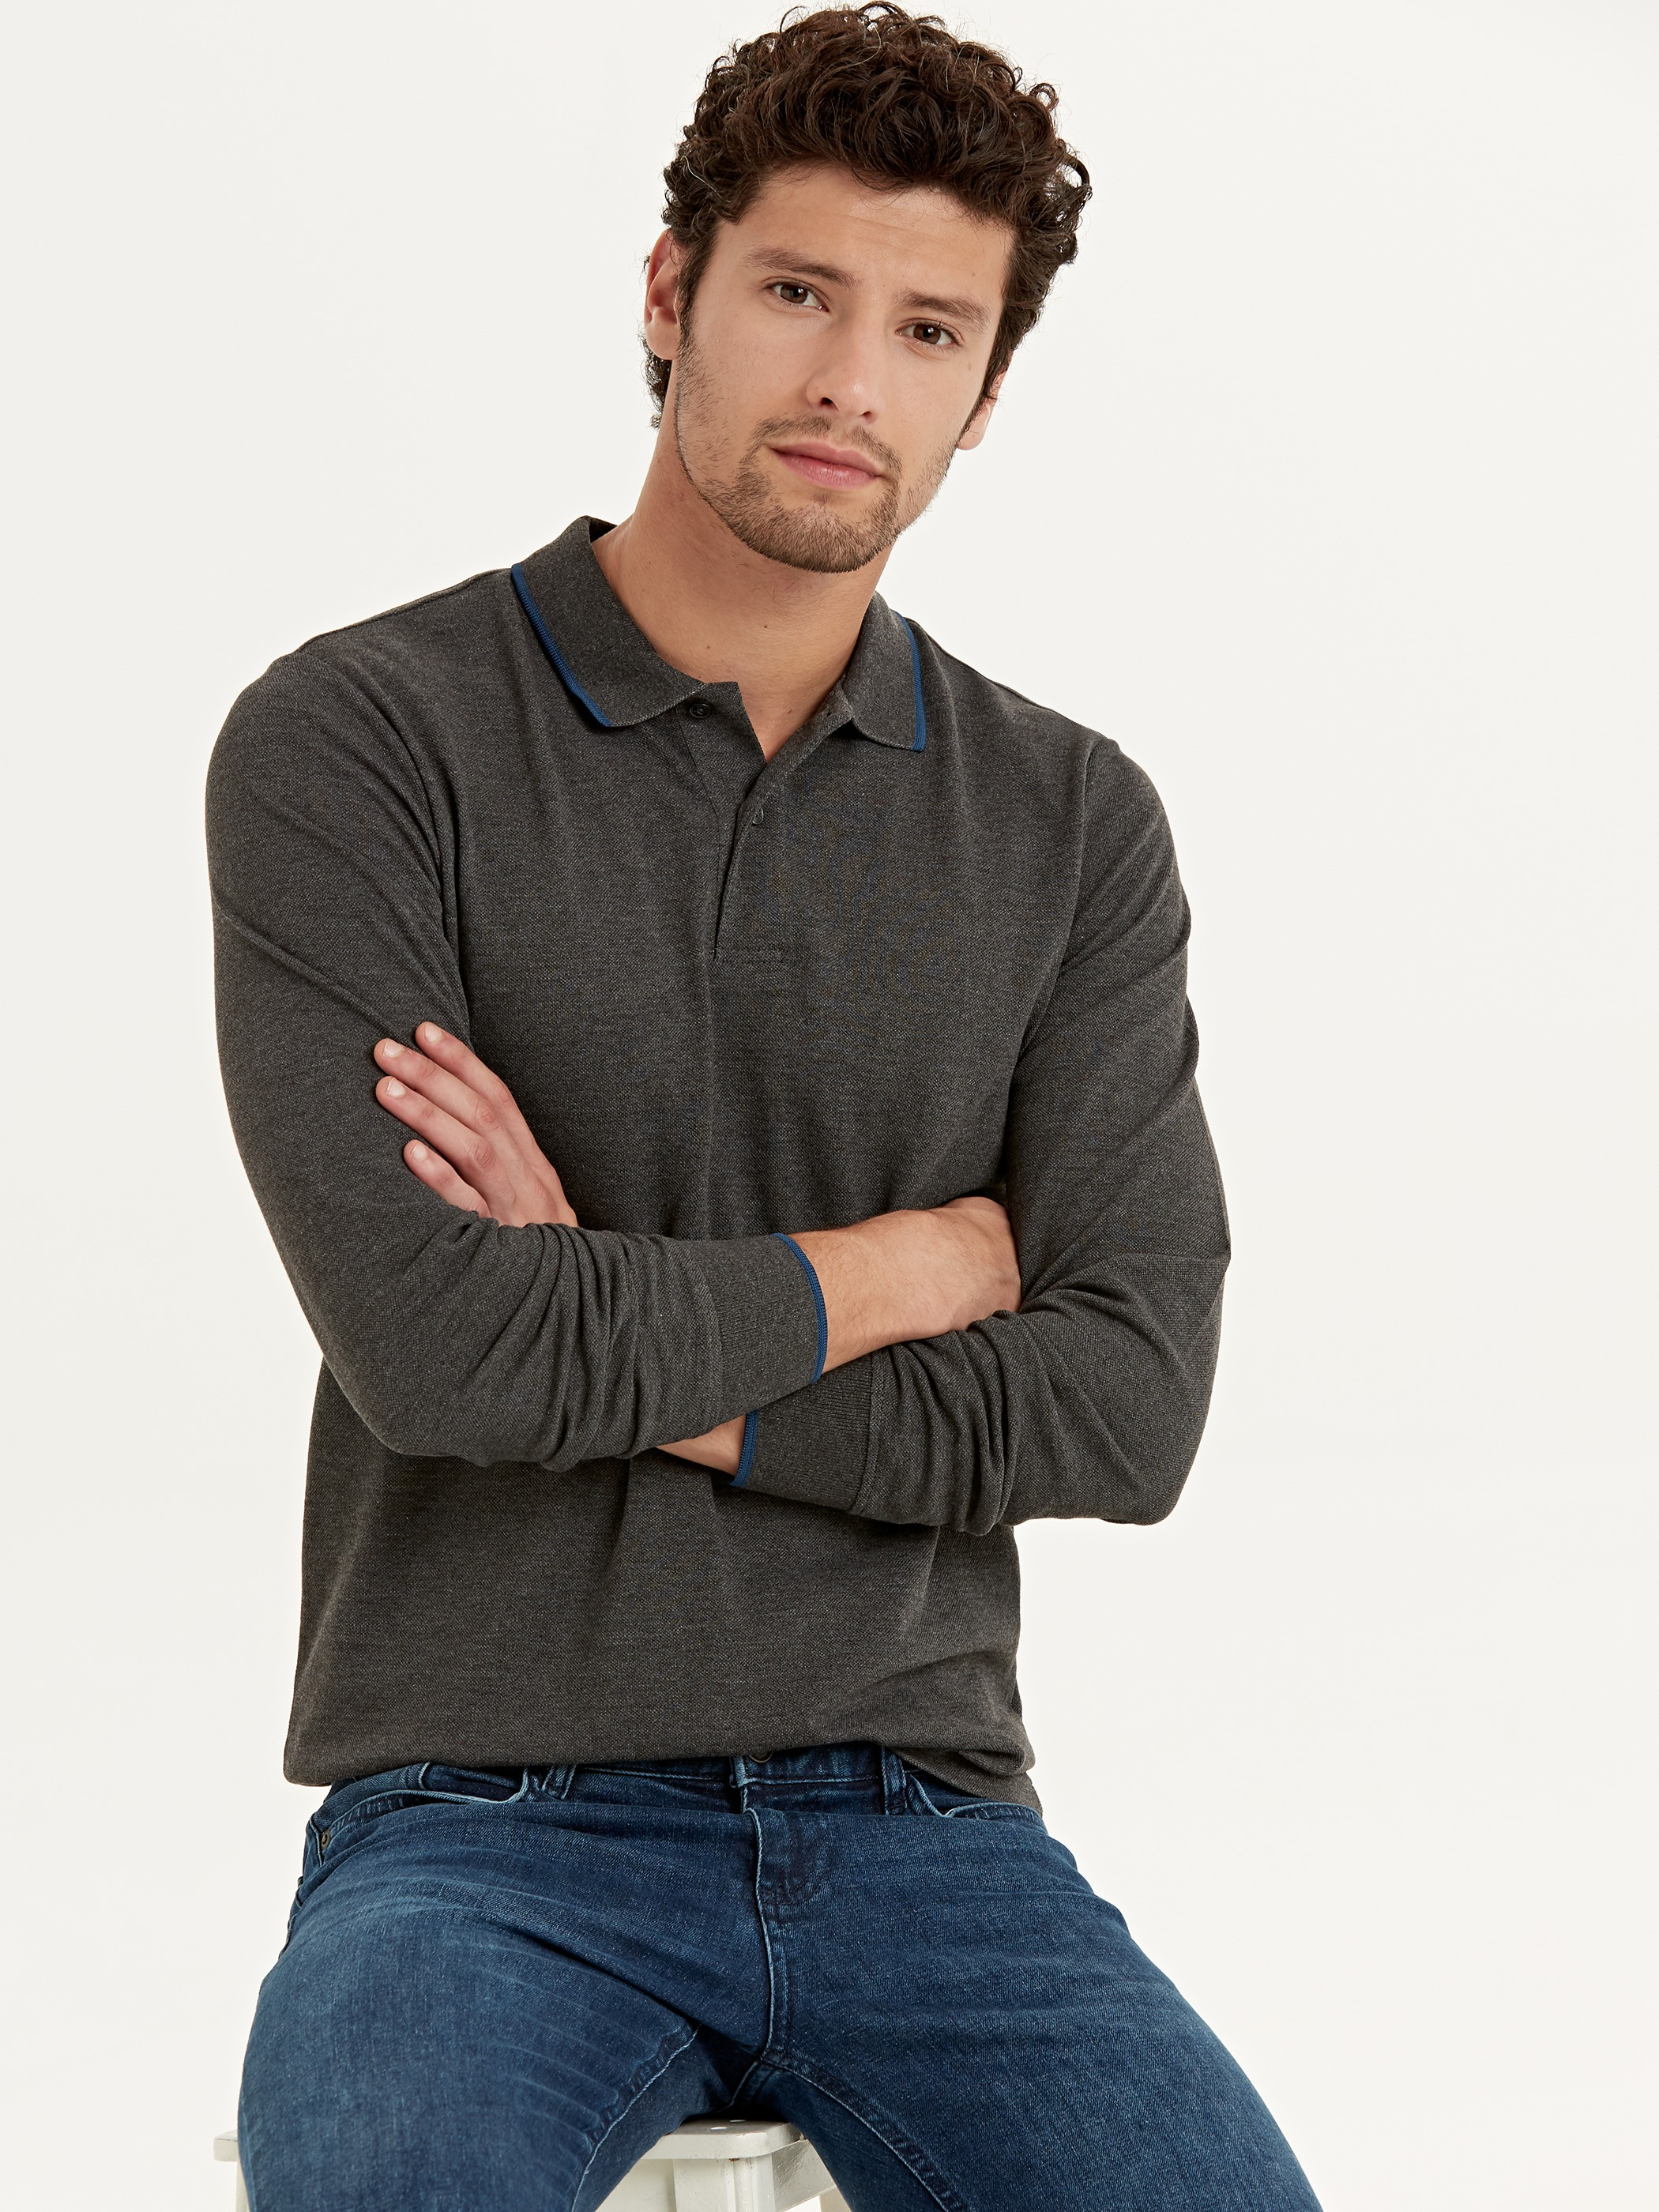 ANTHRACITE - T-Shirt - 9W9175Z8